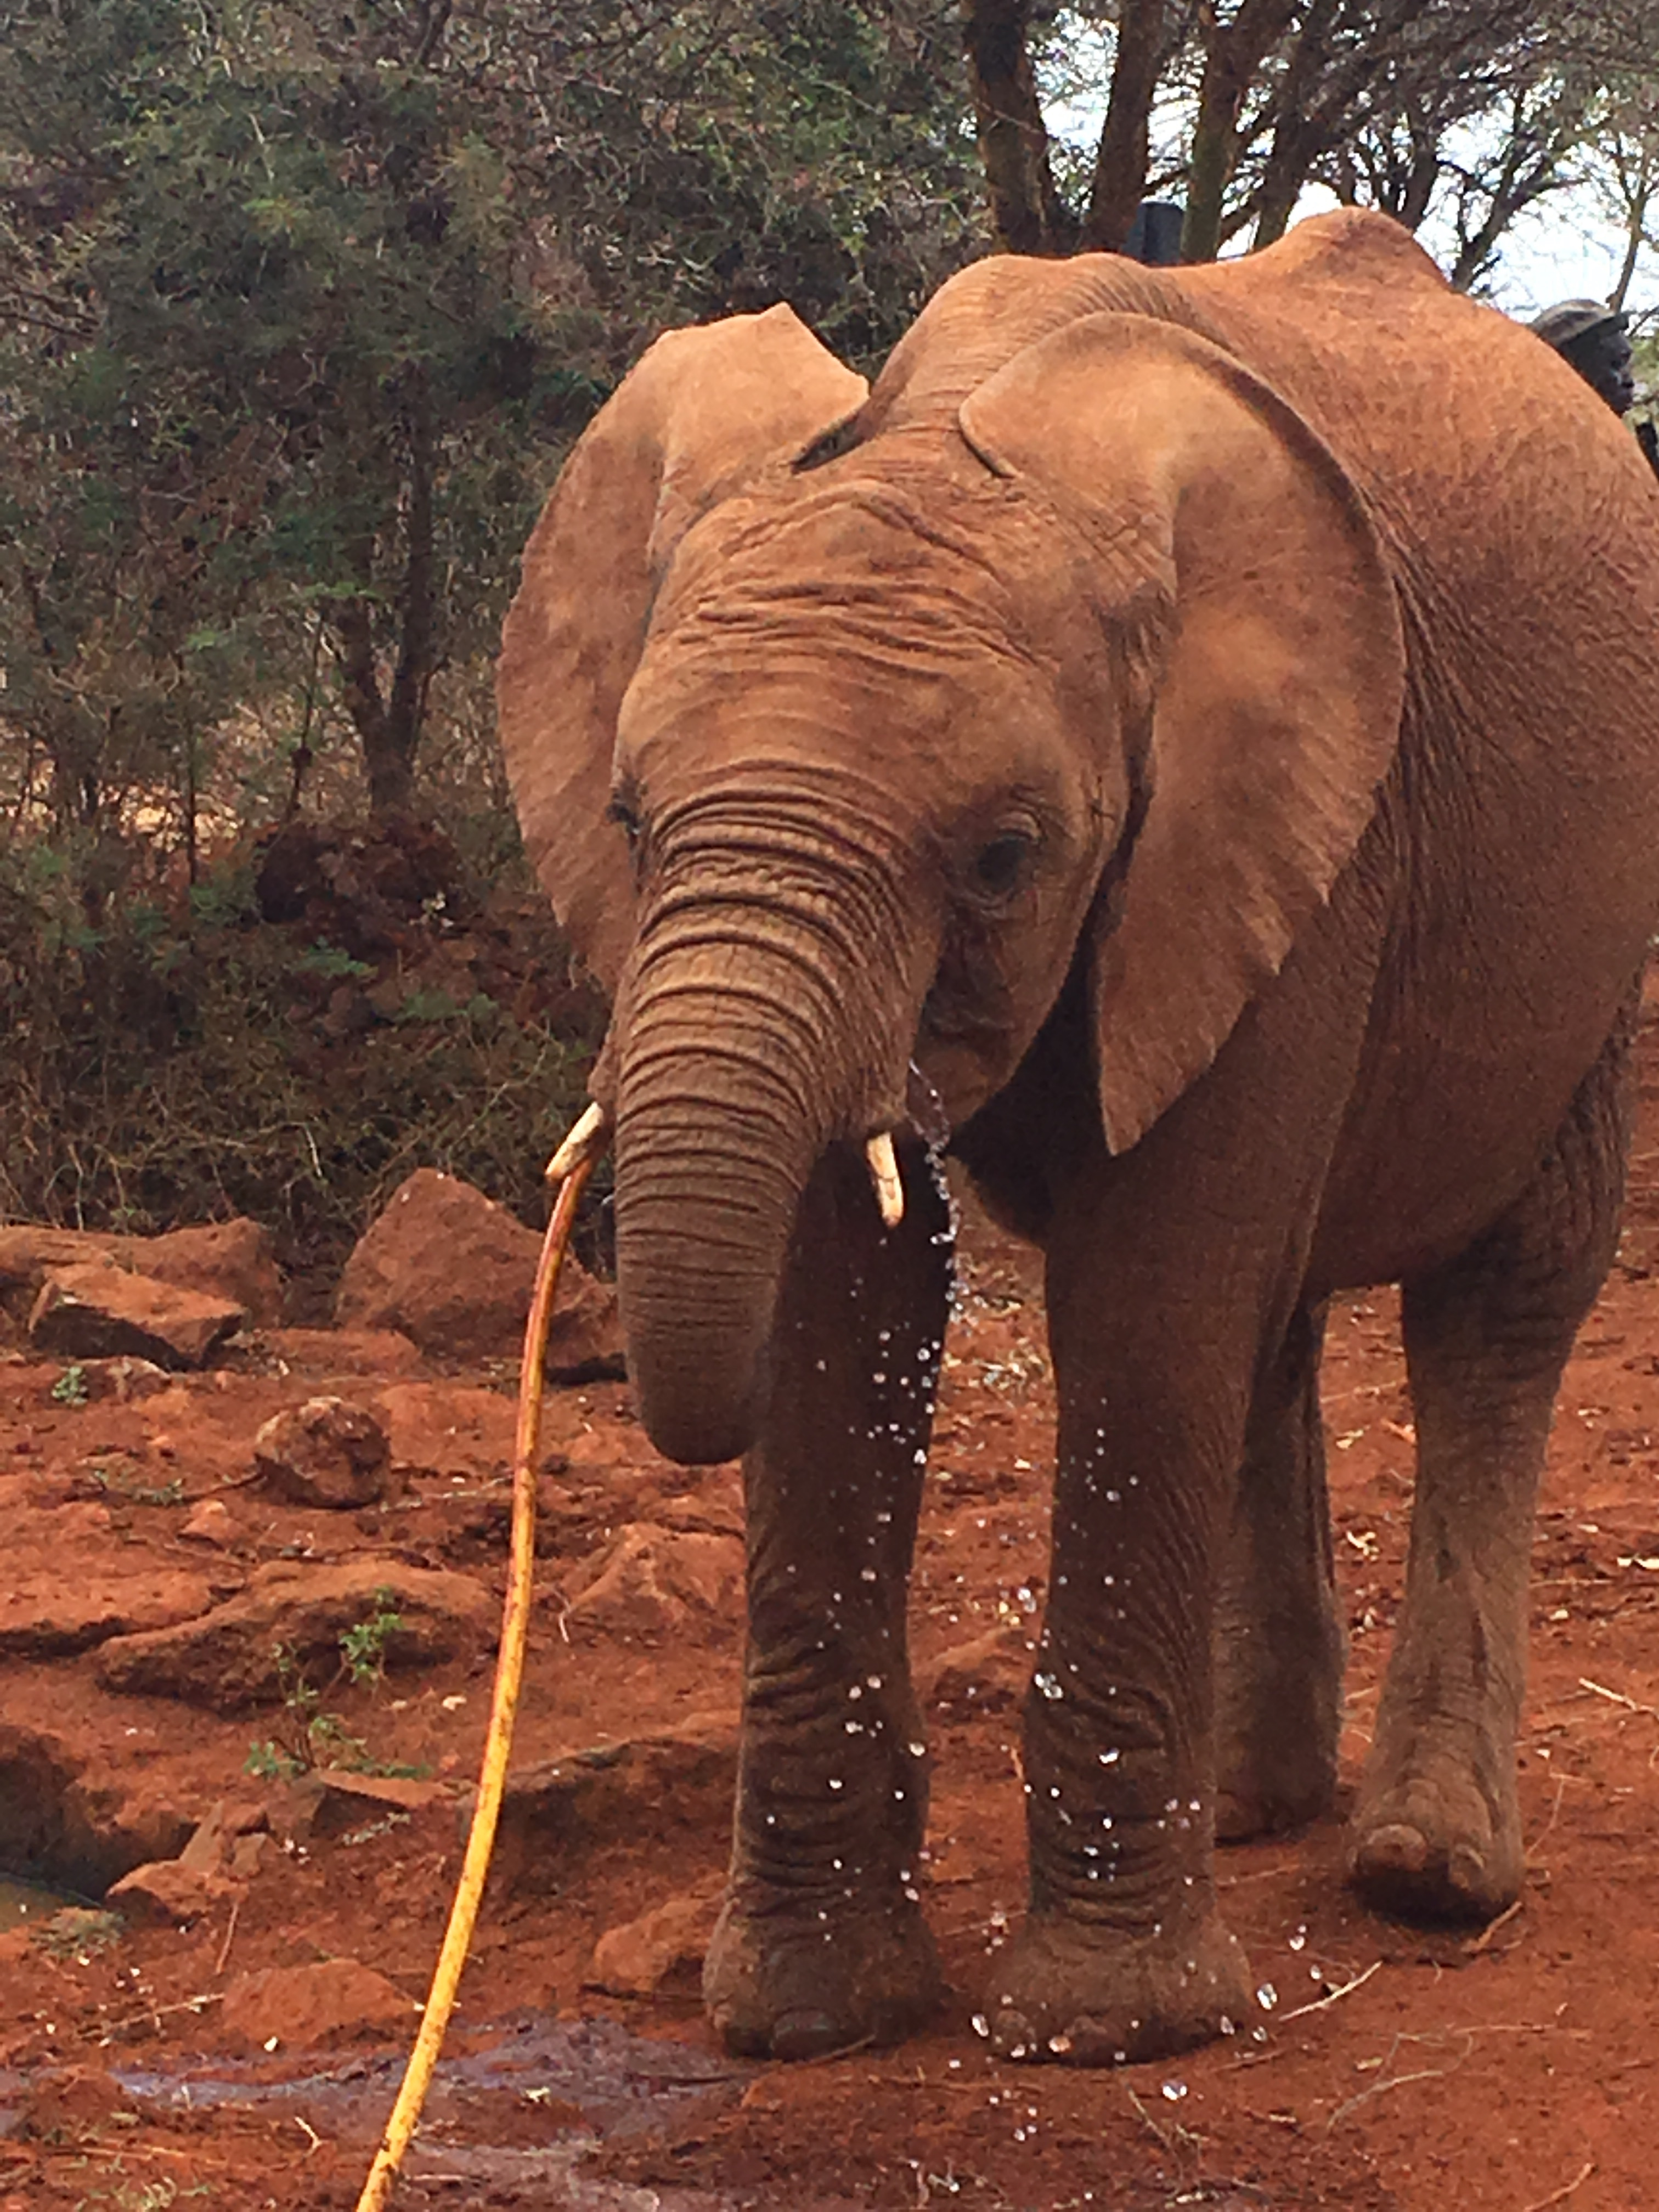 Elephant drinking water from the hose